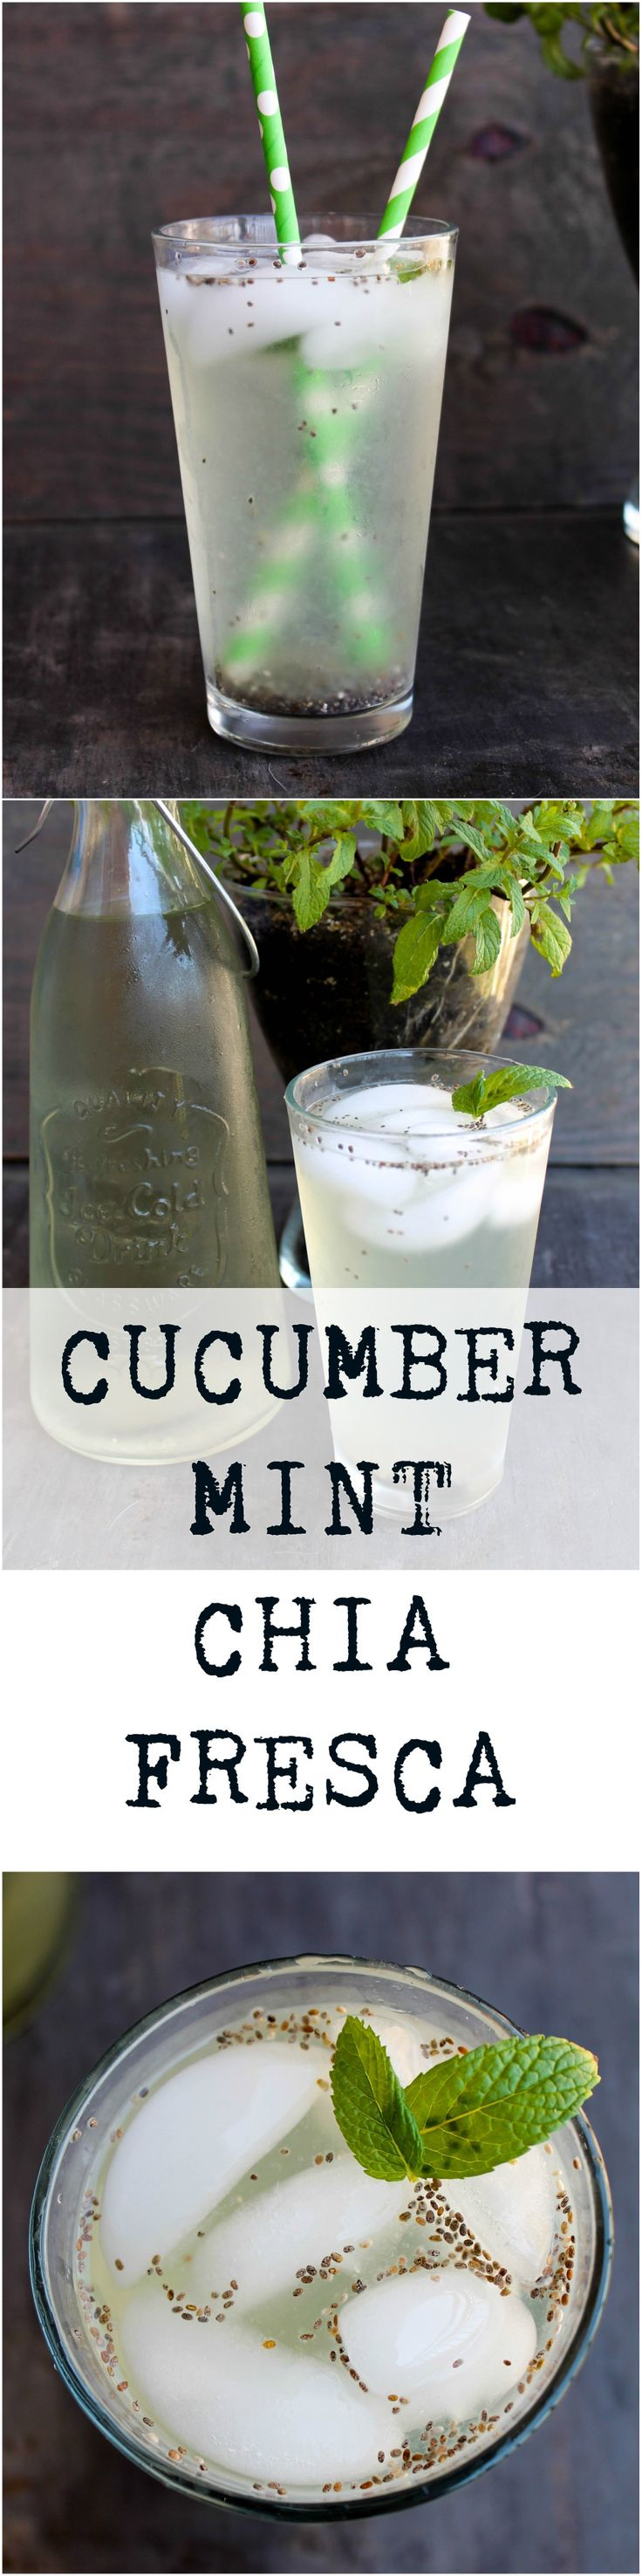 Cucumber Mint Chia Fresca is an easy and flavorful beverage that keeps you hydrated and possibly help you with your soda/caffeine addiction!